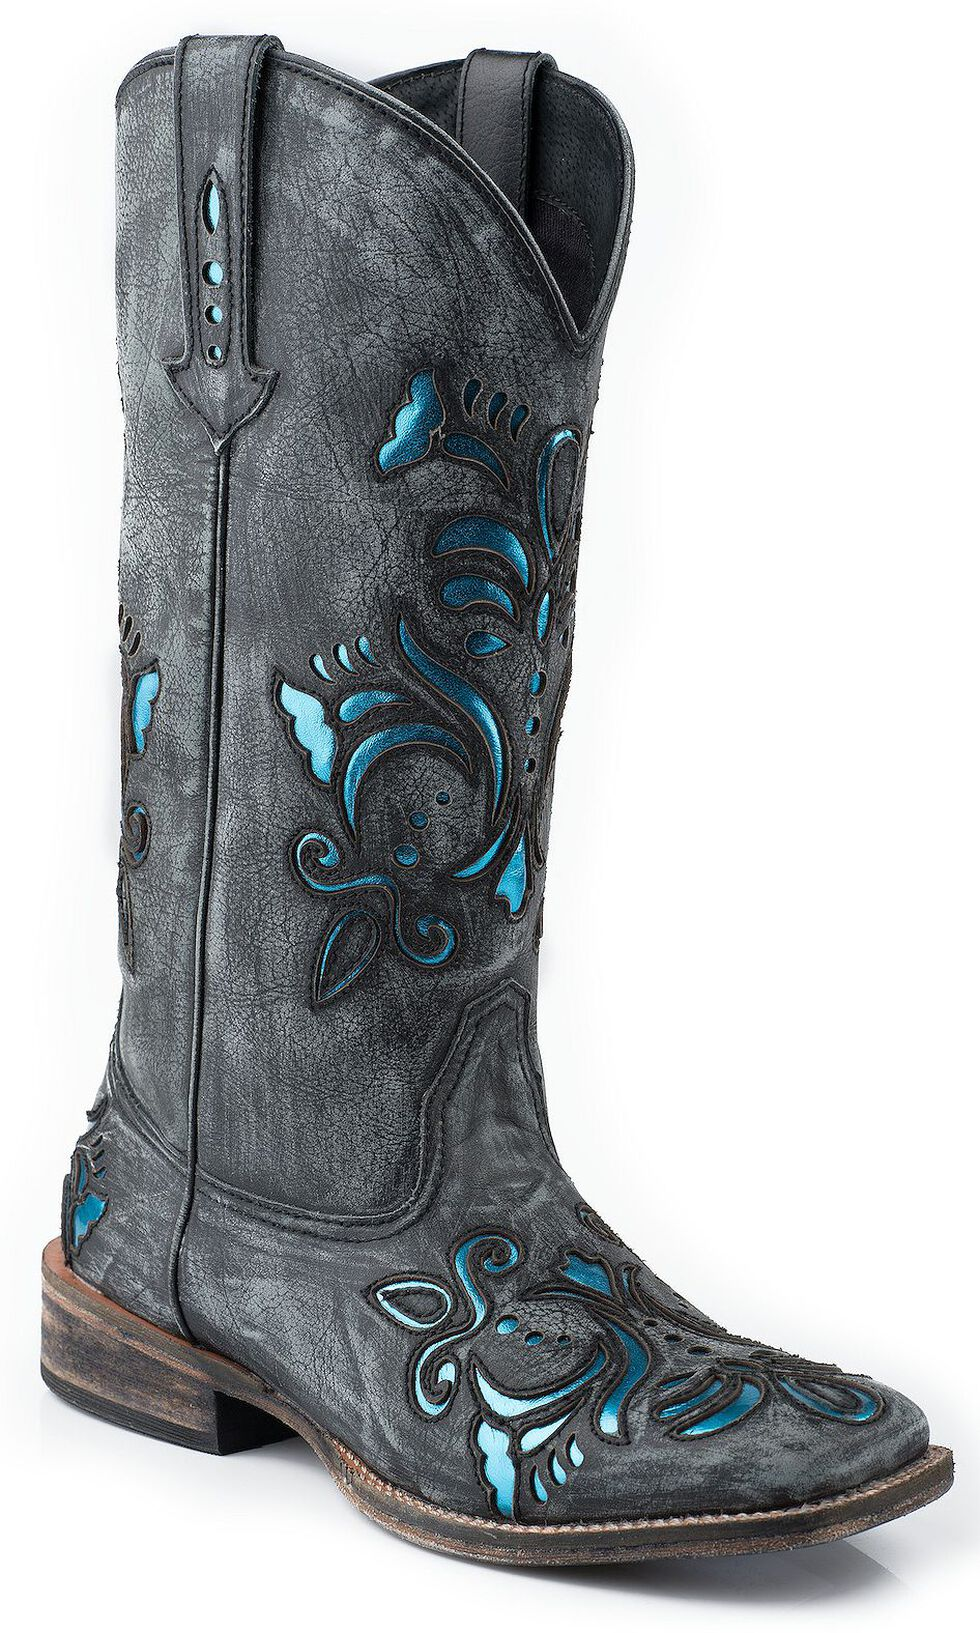 Roper Shiny Turquoise Leather Inlay Cowgirl Boots - Square Toe, Black, hi-res